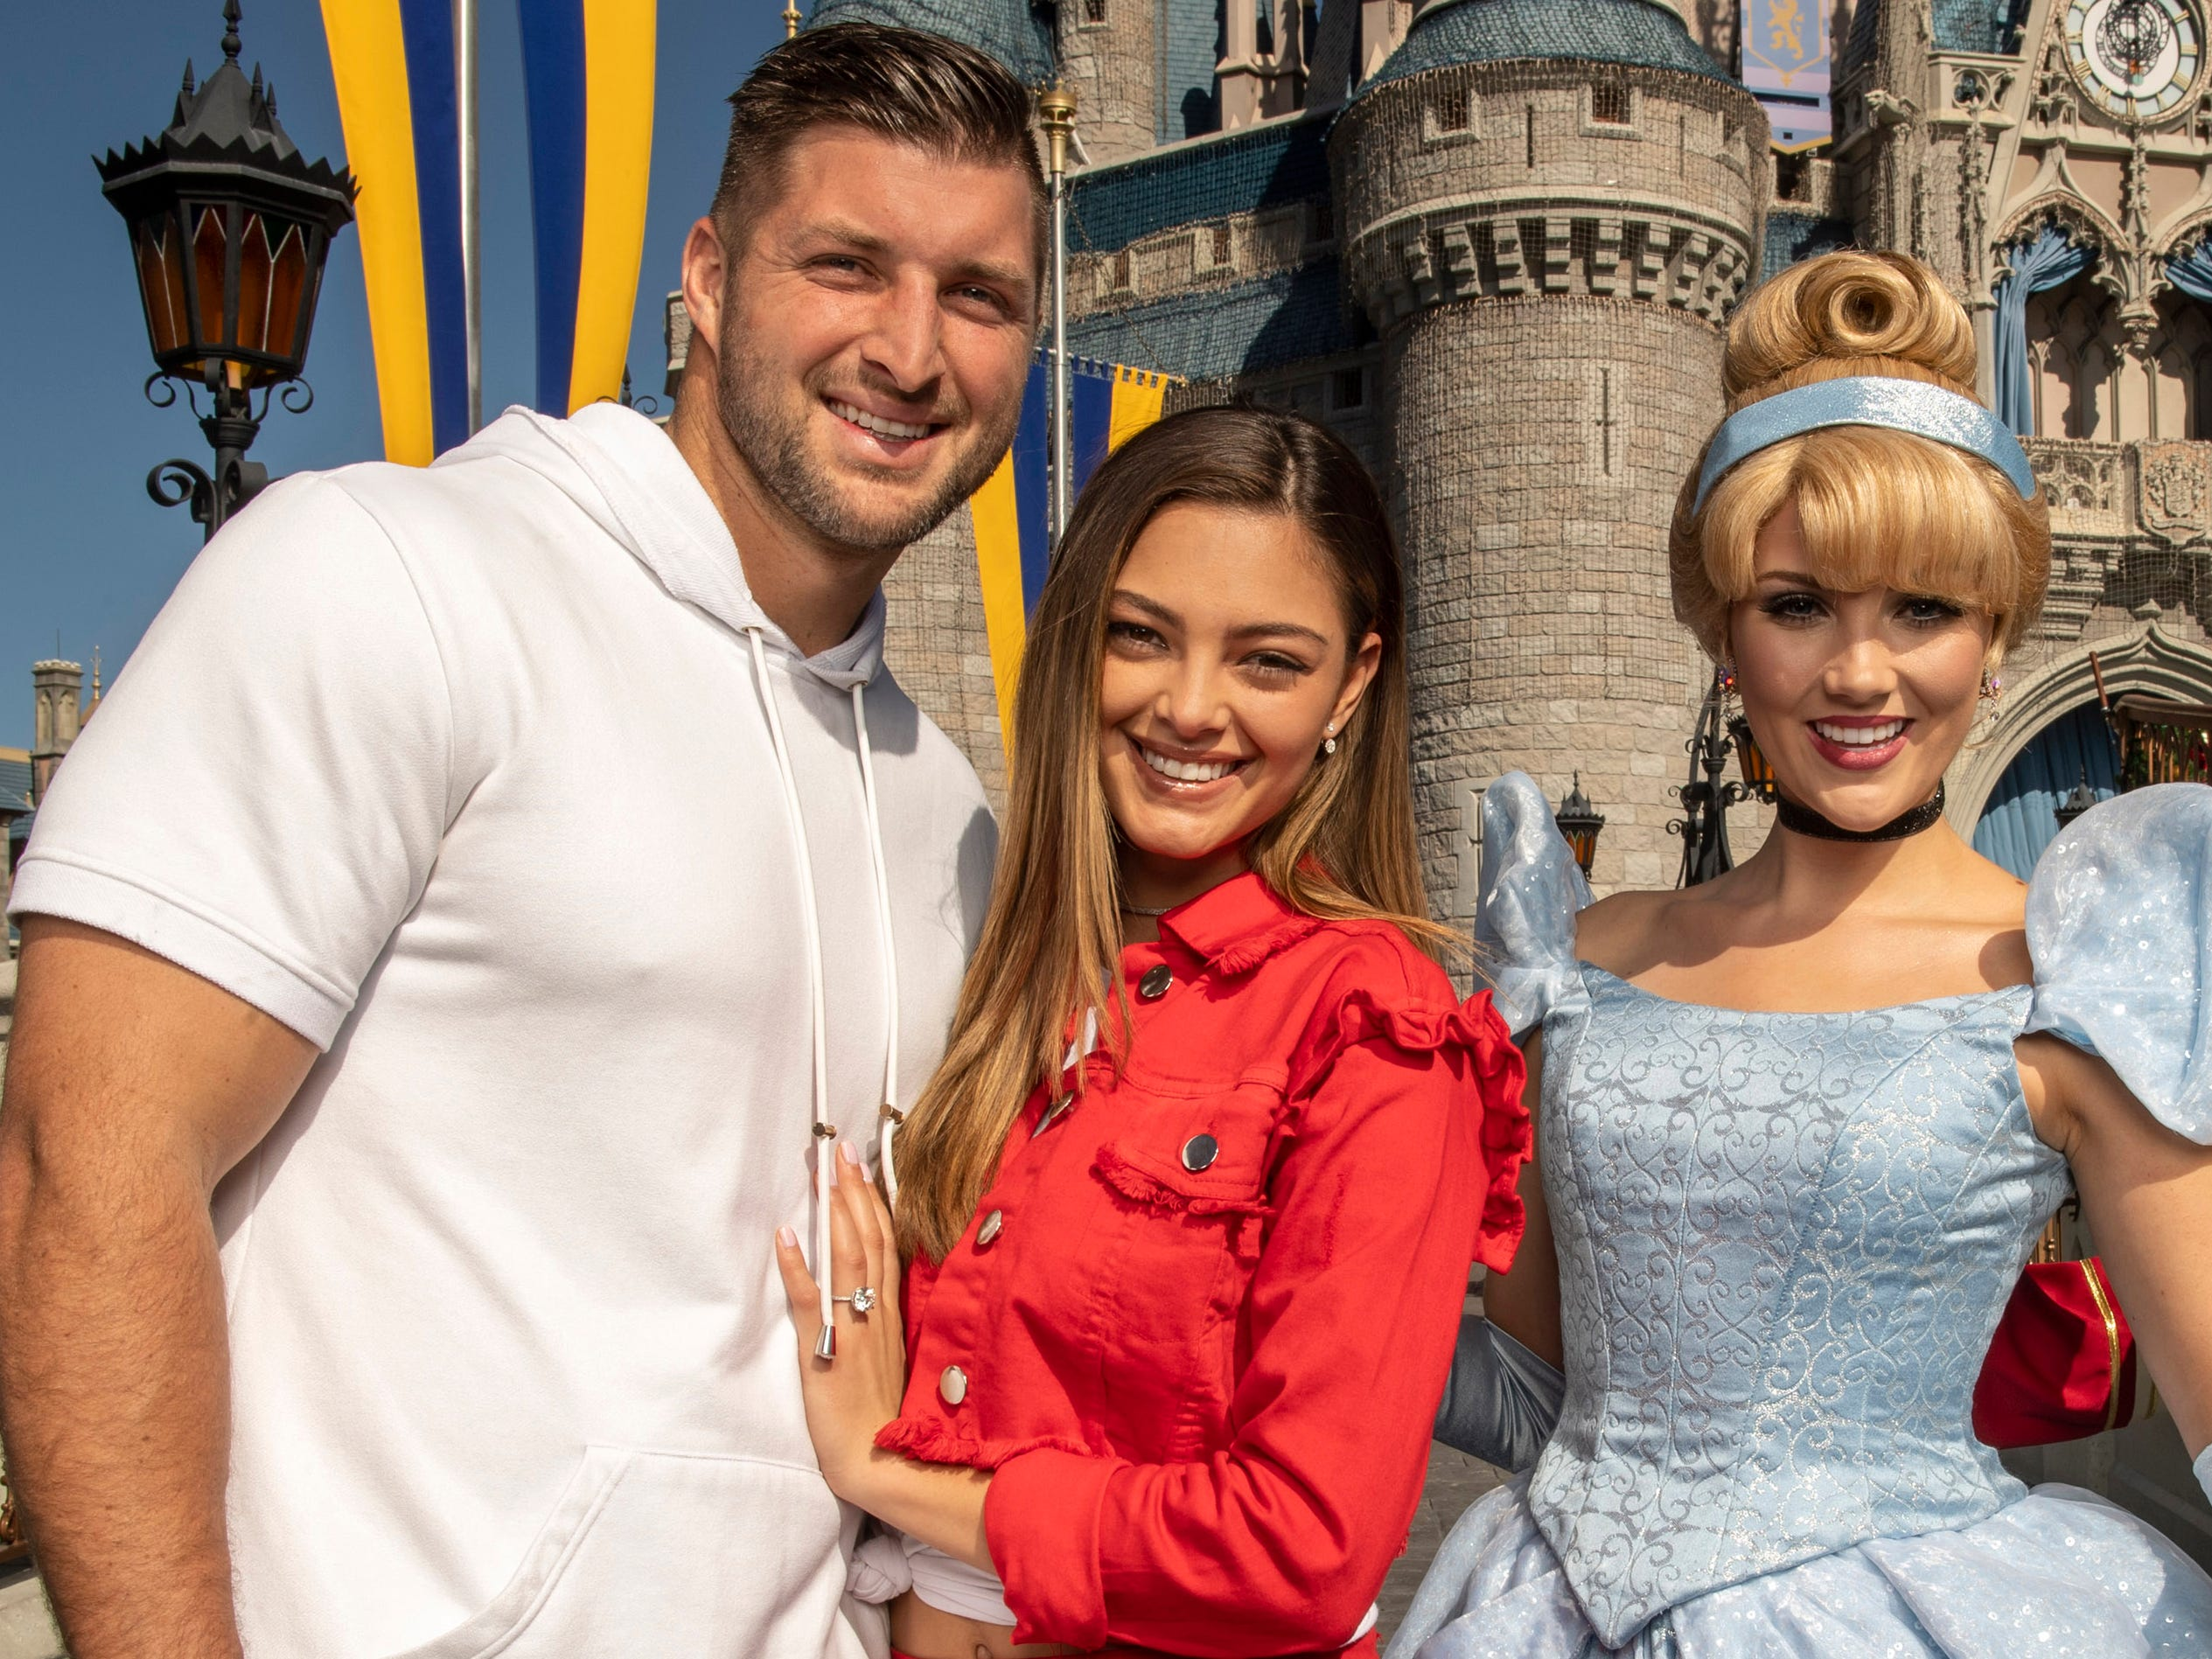 Tim Tebow and his fiancee Demi-Leigh Nel-Peters celebrated at Disney World on Friday.